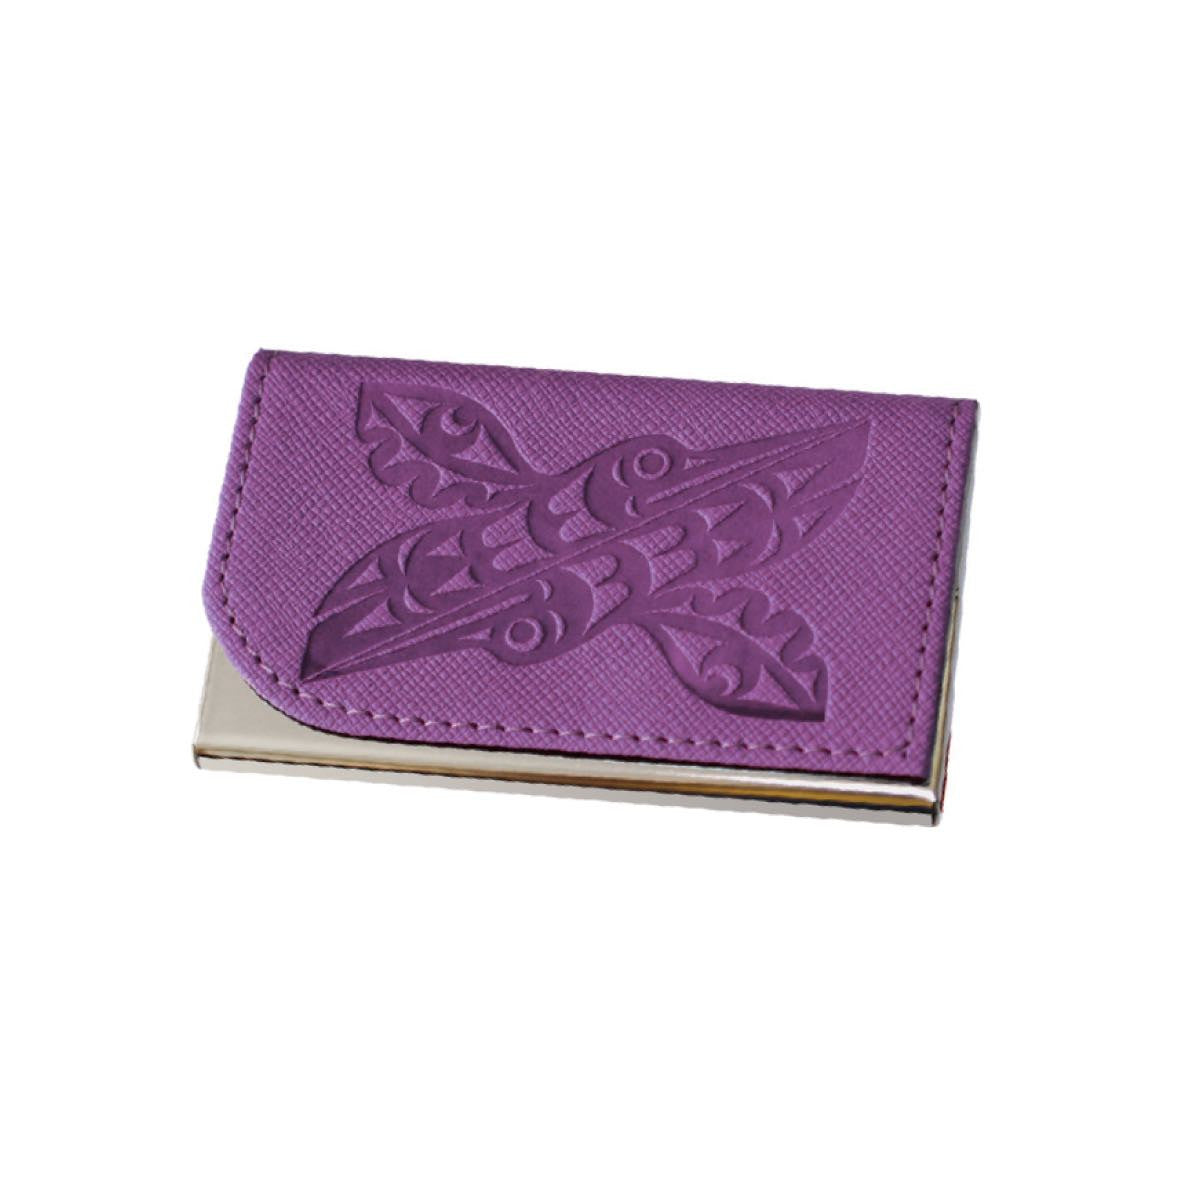 Card Holder - Hummingbirds by Maynard Johnny Jr.(purple)